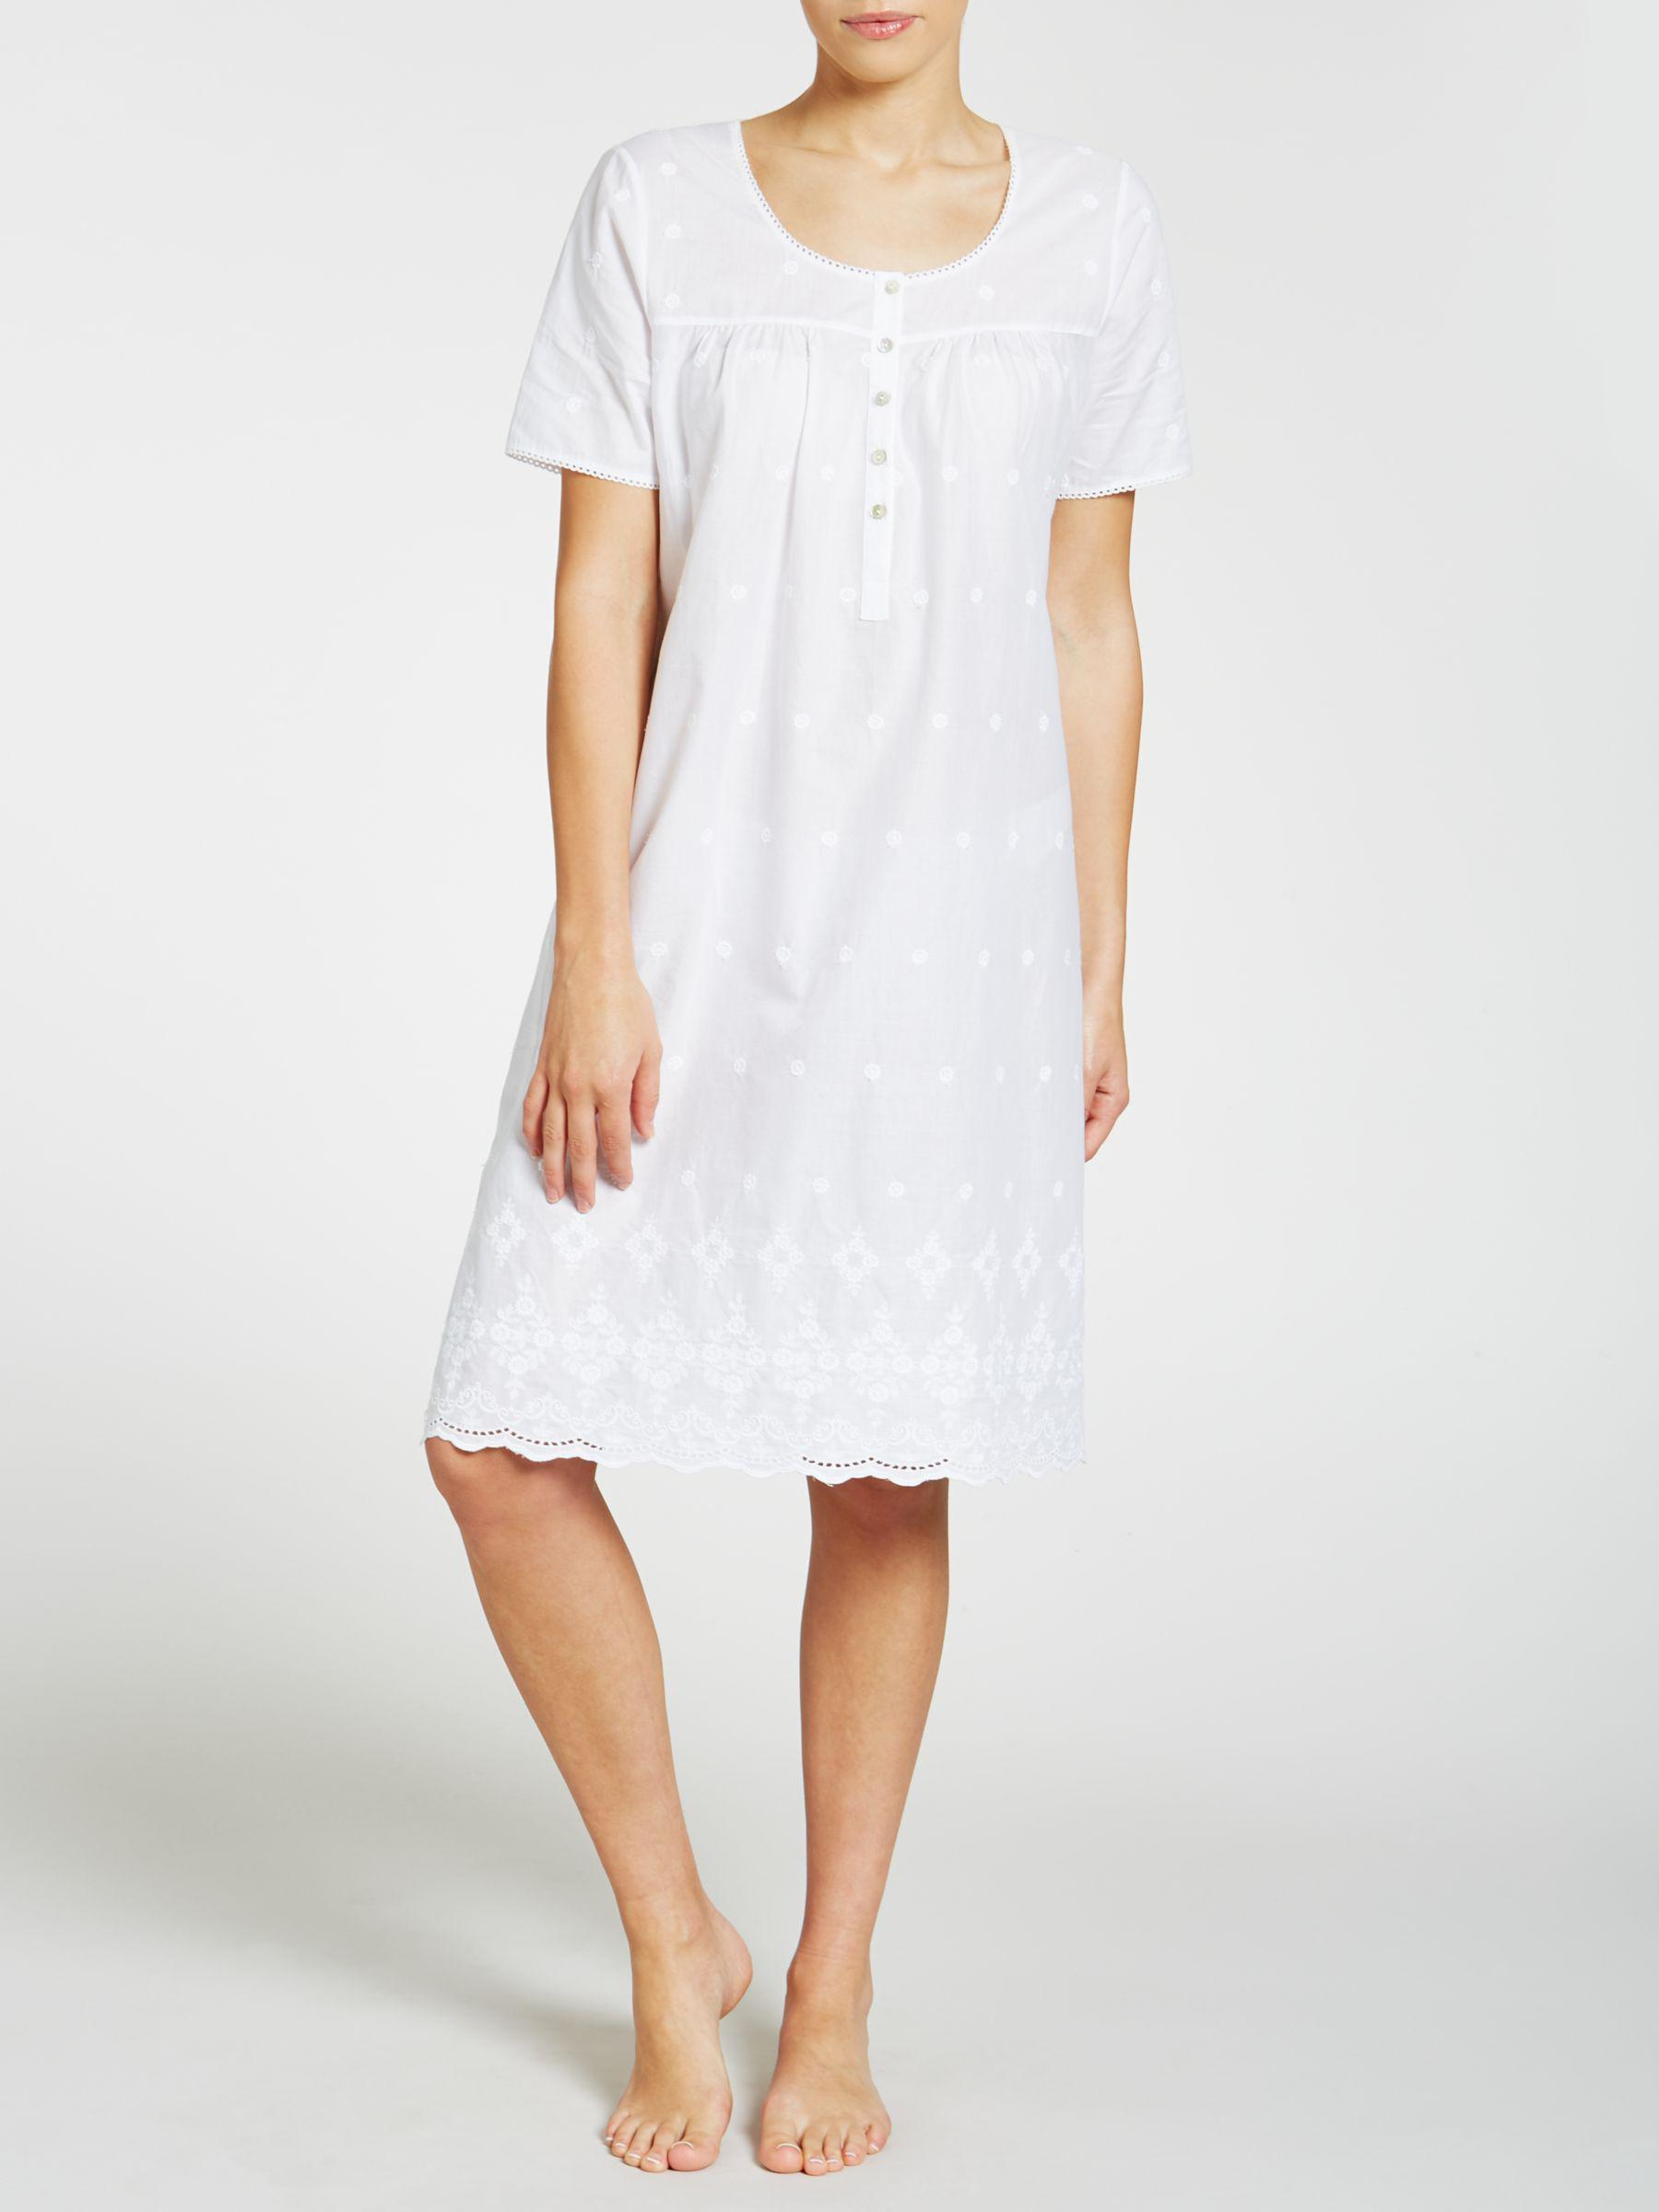 a92c95cdf5 John Lewis Broderie Anglaise Short Sleeve Nightdress in White - Lyst